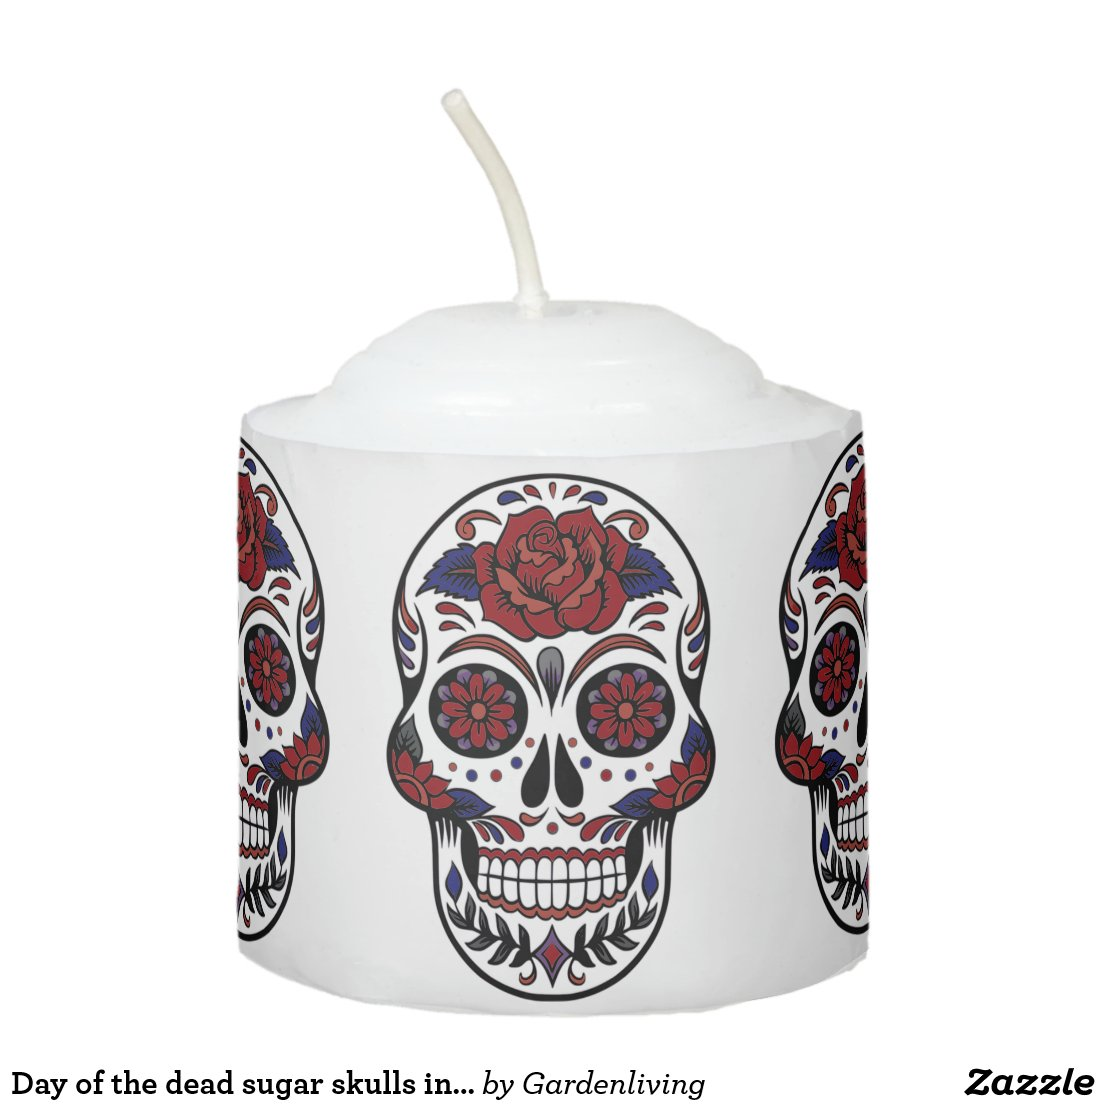 Day of the dead sugar skulls in burgundy and blue